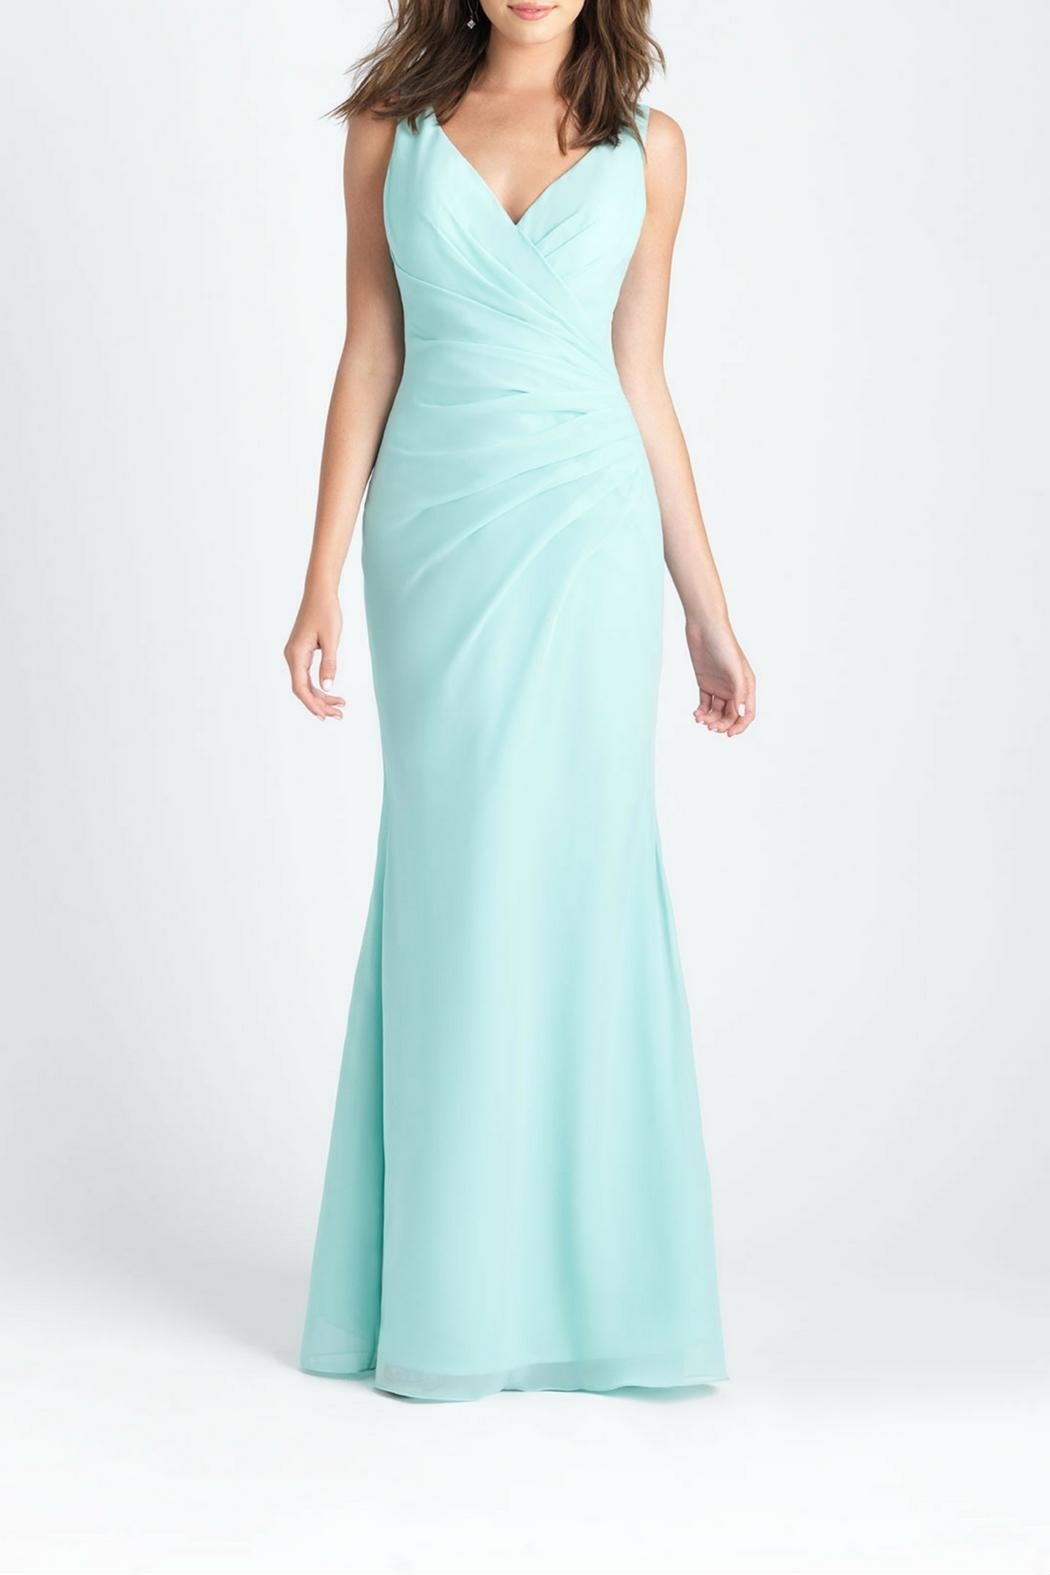 Allure Bridals Lace Back Bridesmaid Dress - Main Image